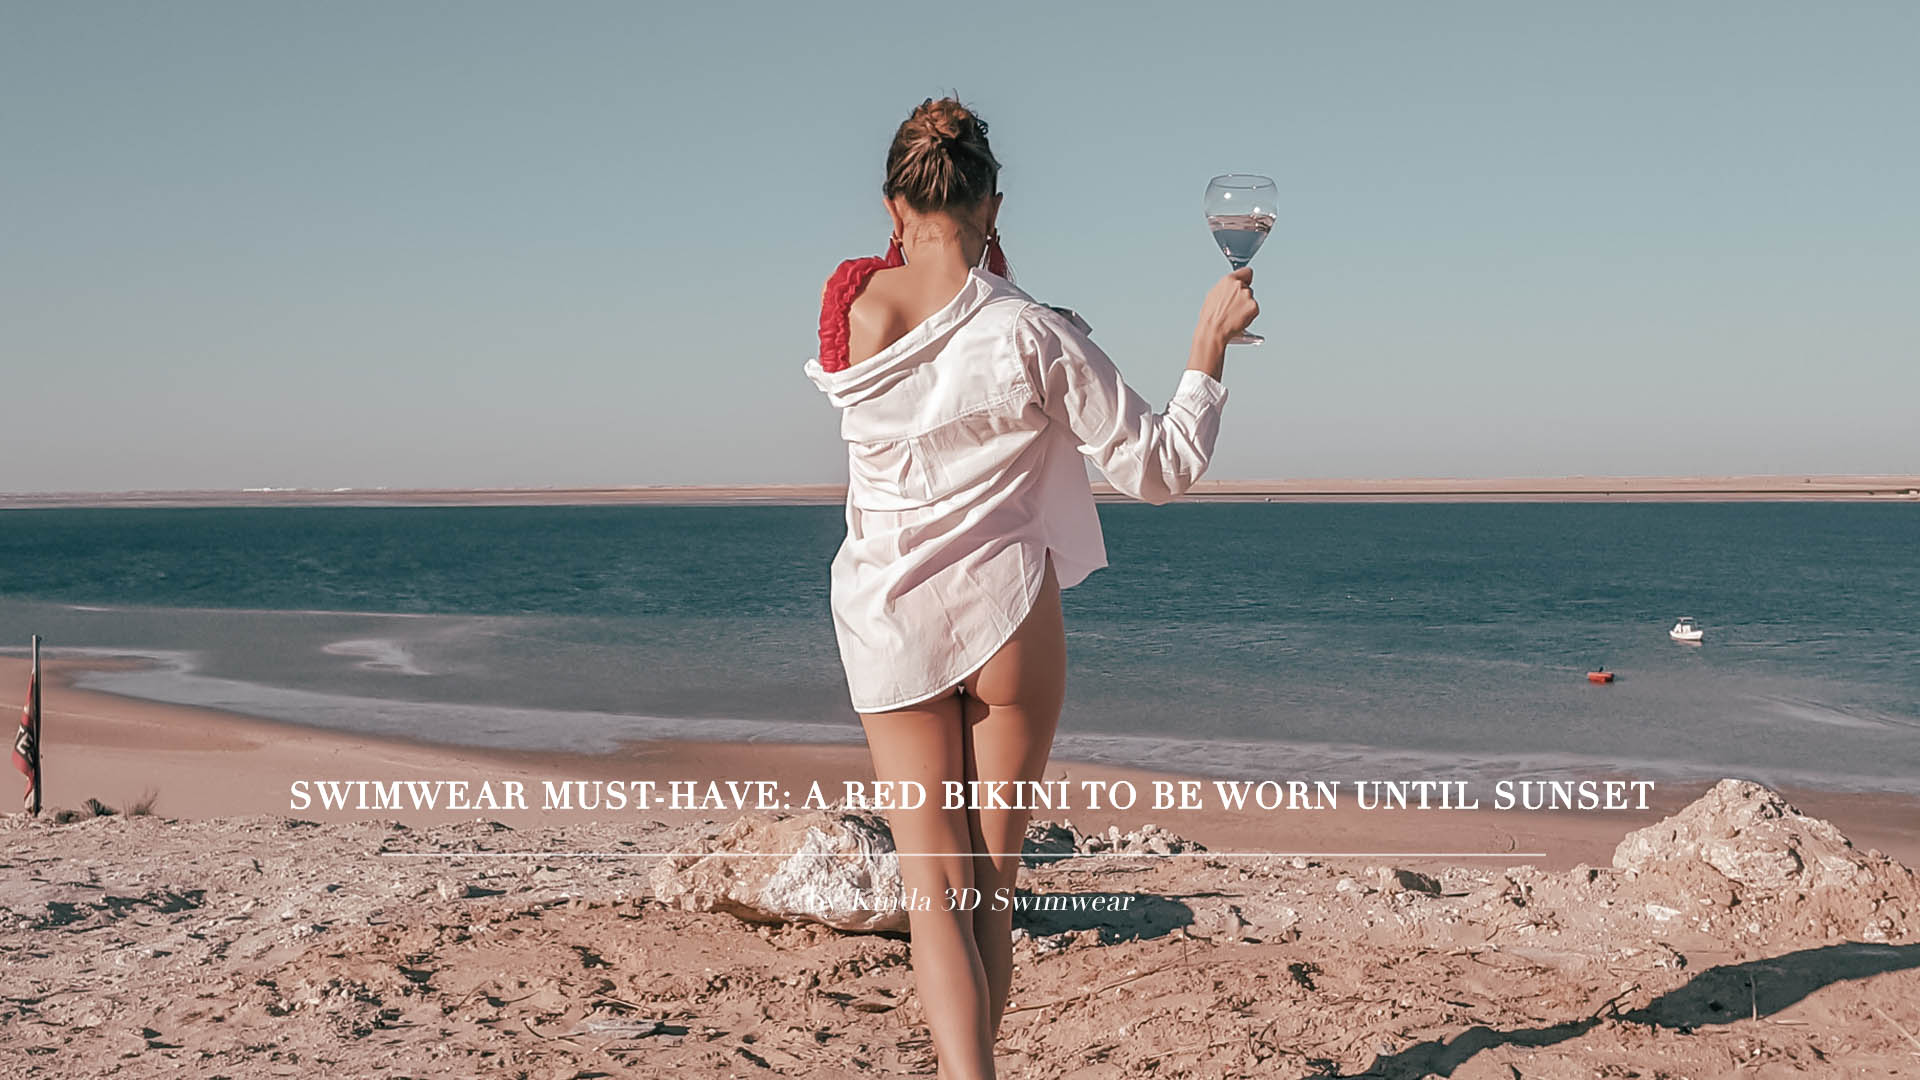 Swimwear must-have 2020: a red swimsuit to be worn until sunset